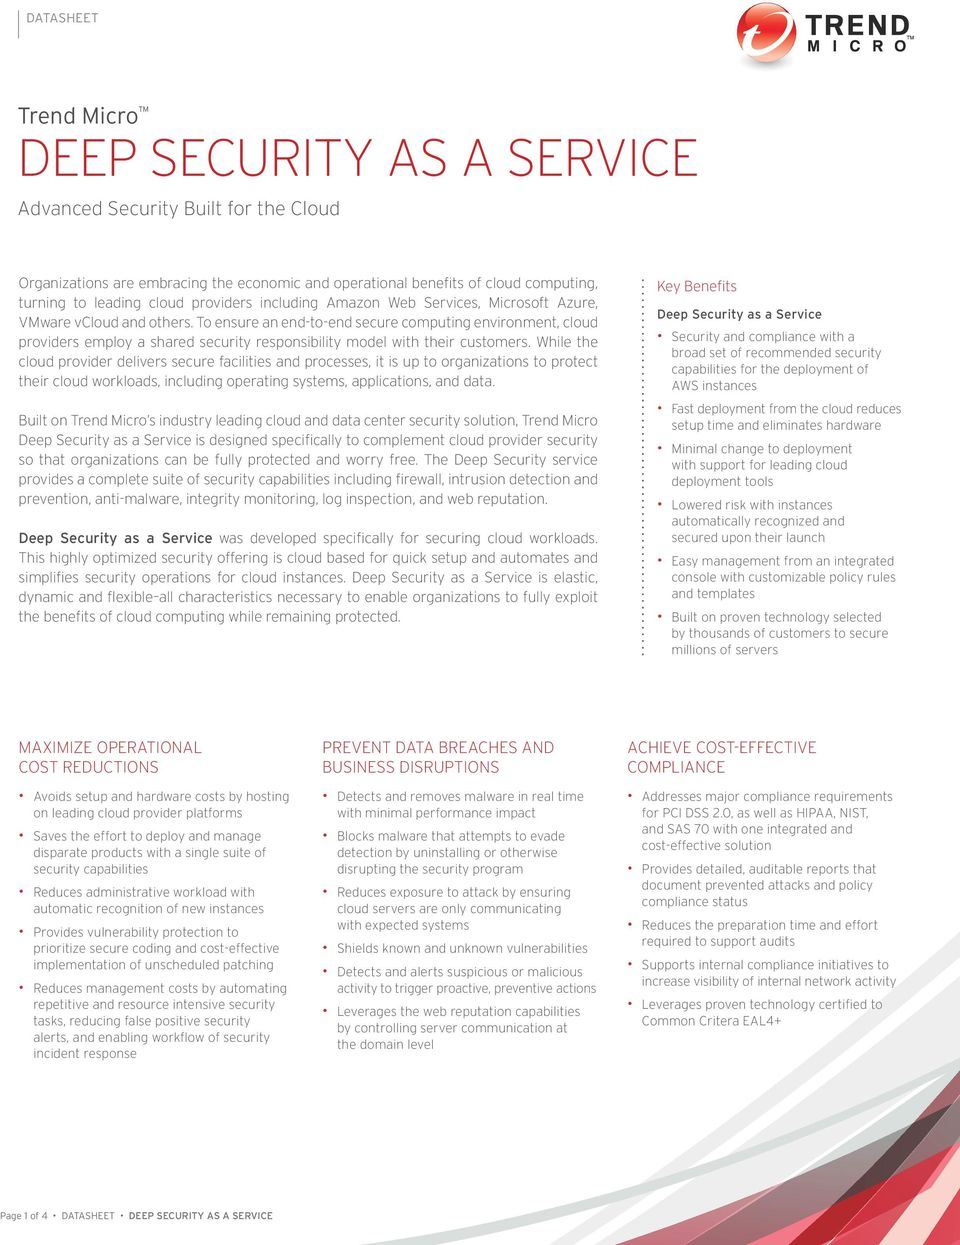 To ensure an end-to-end secure computing environment, cloud providers employ a shared security responsibility model with their customers.